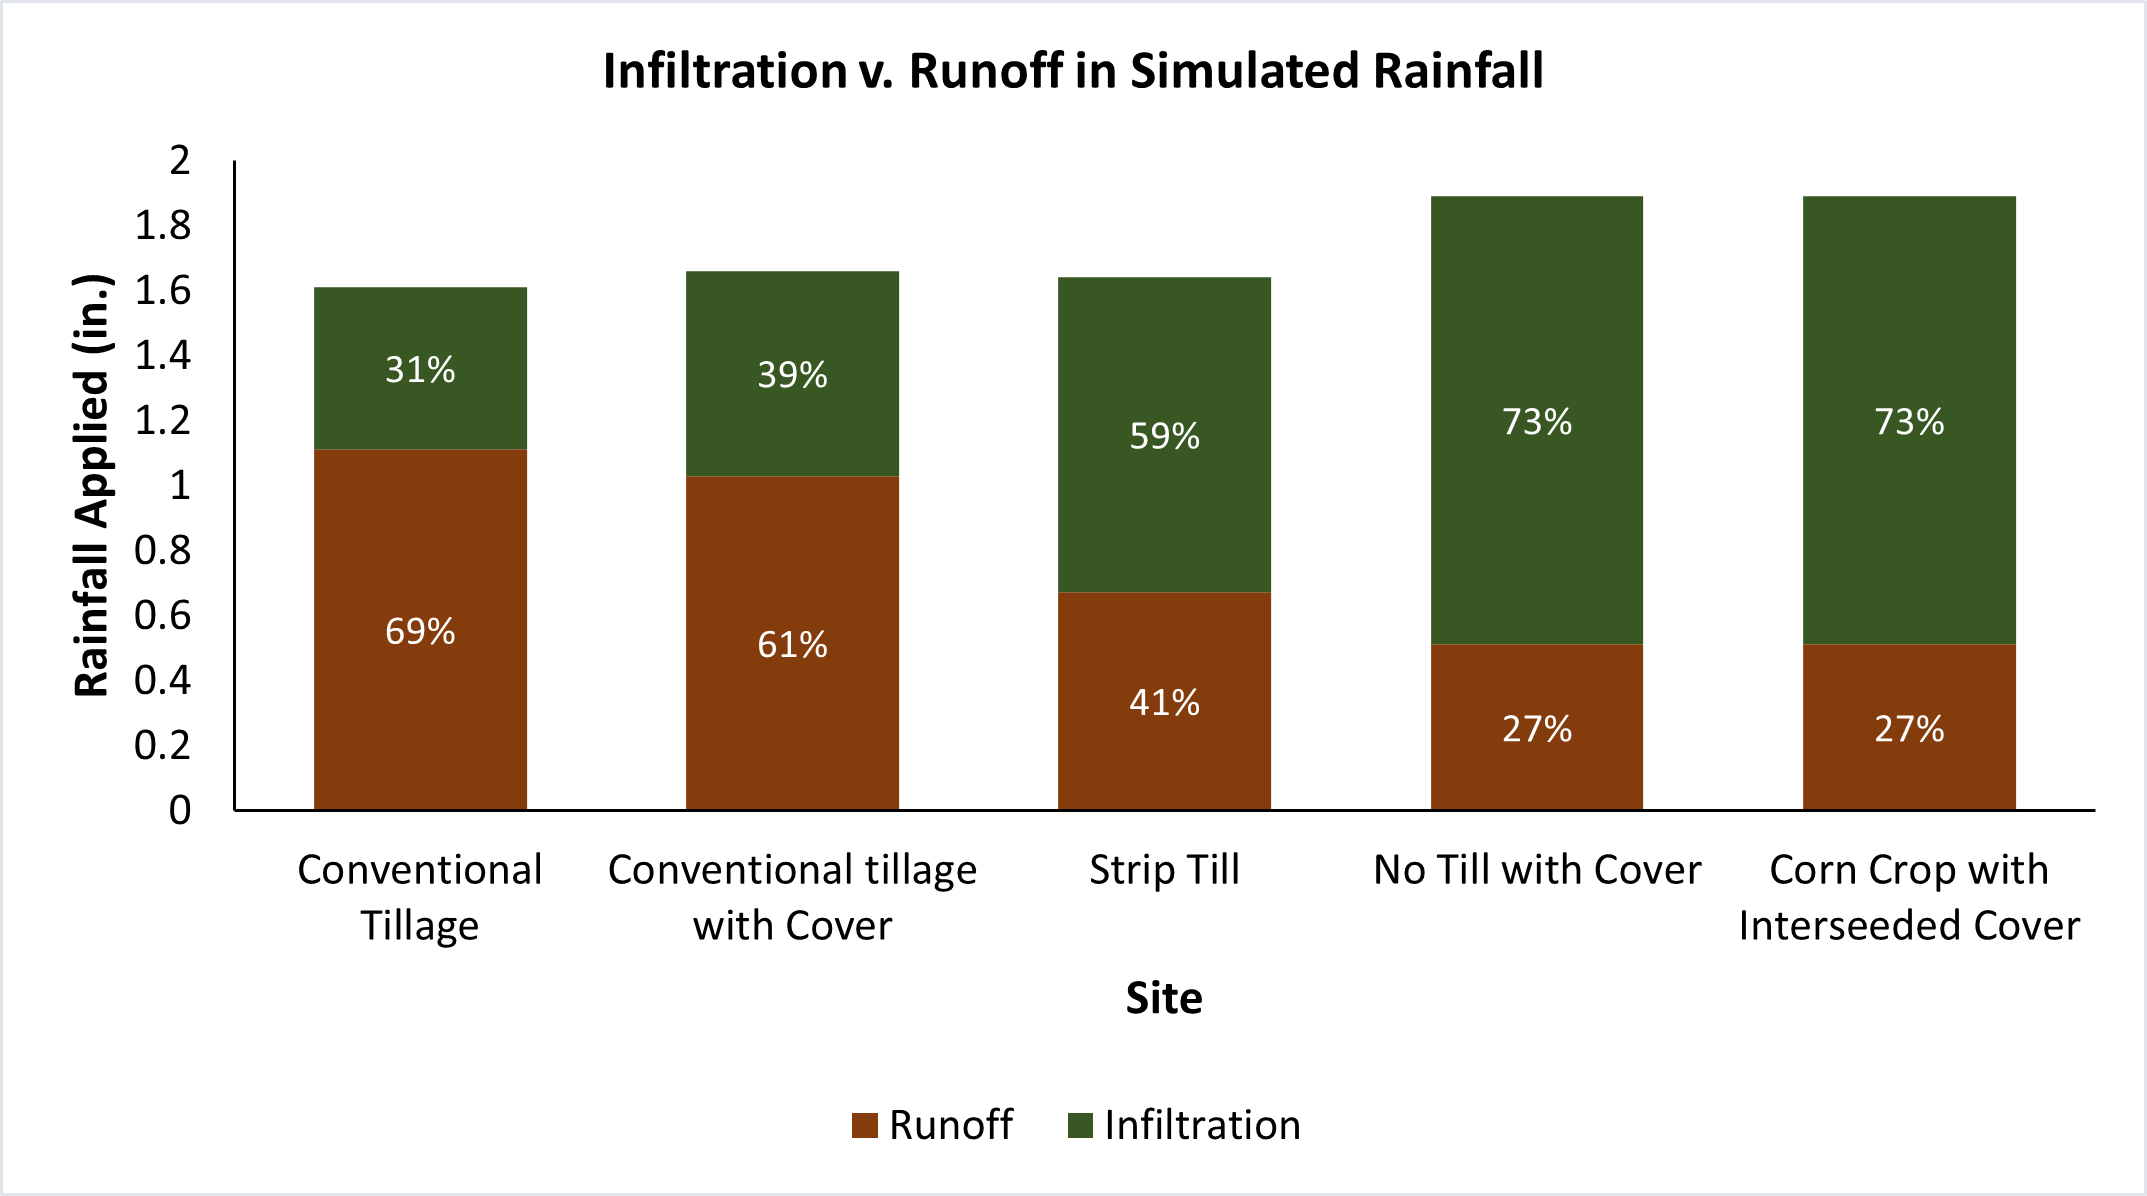 Infiltration v. Runoff in Simulated Rainfall